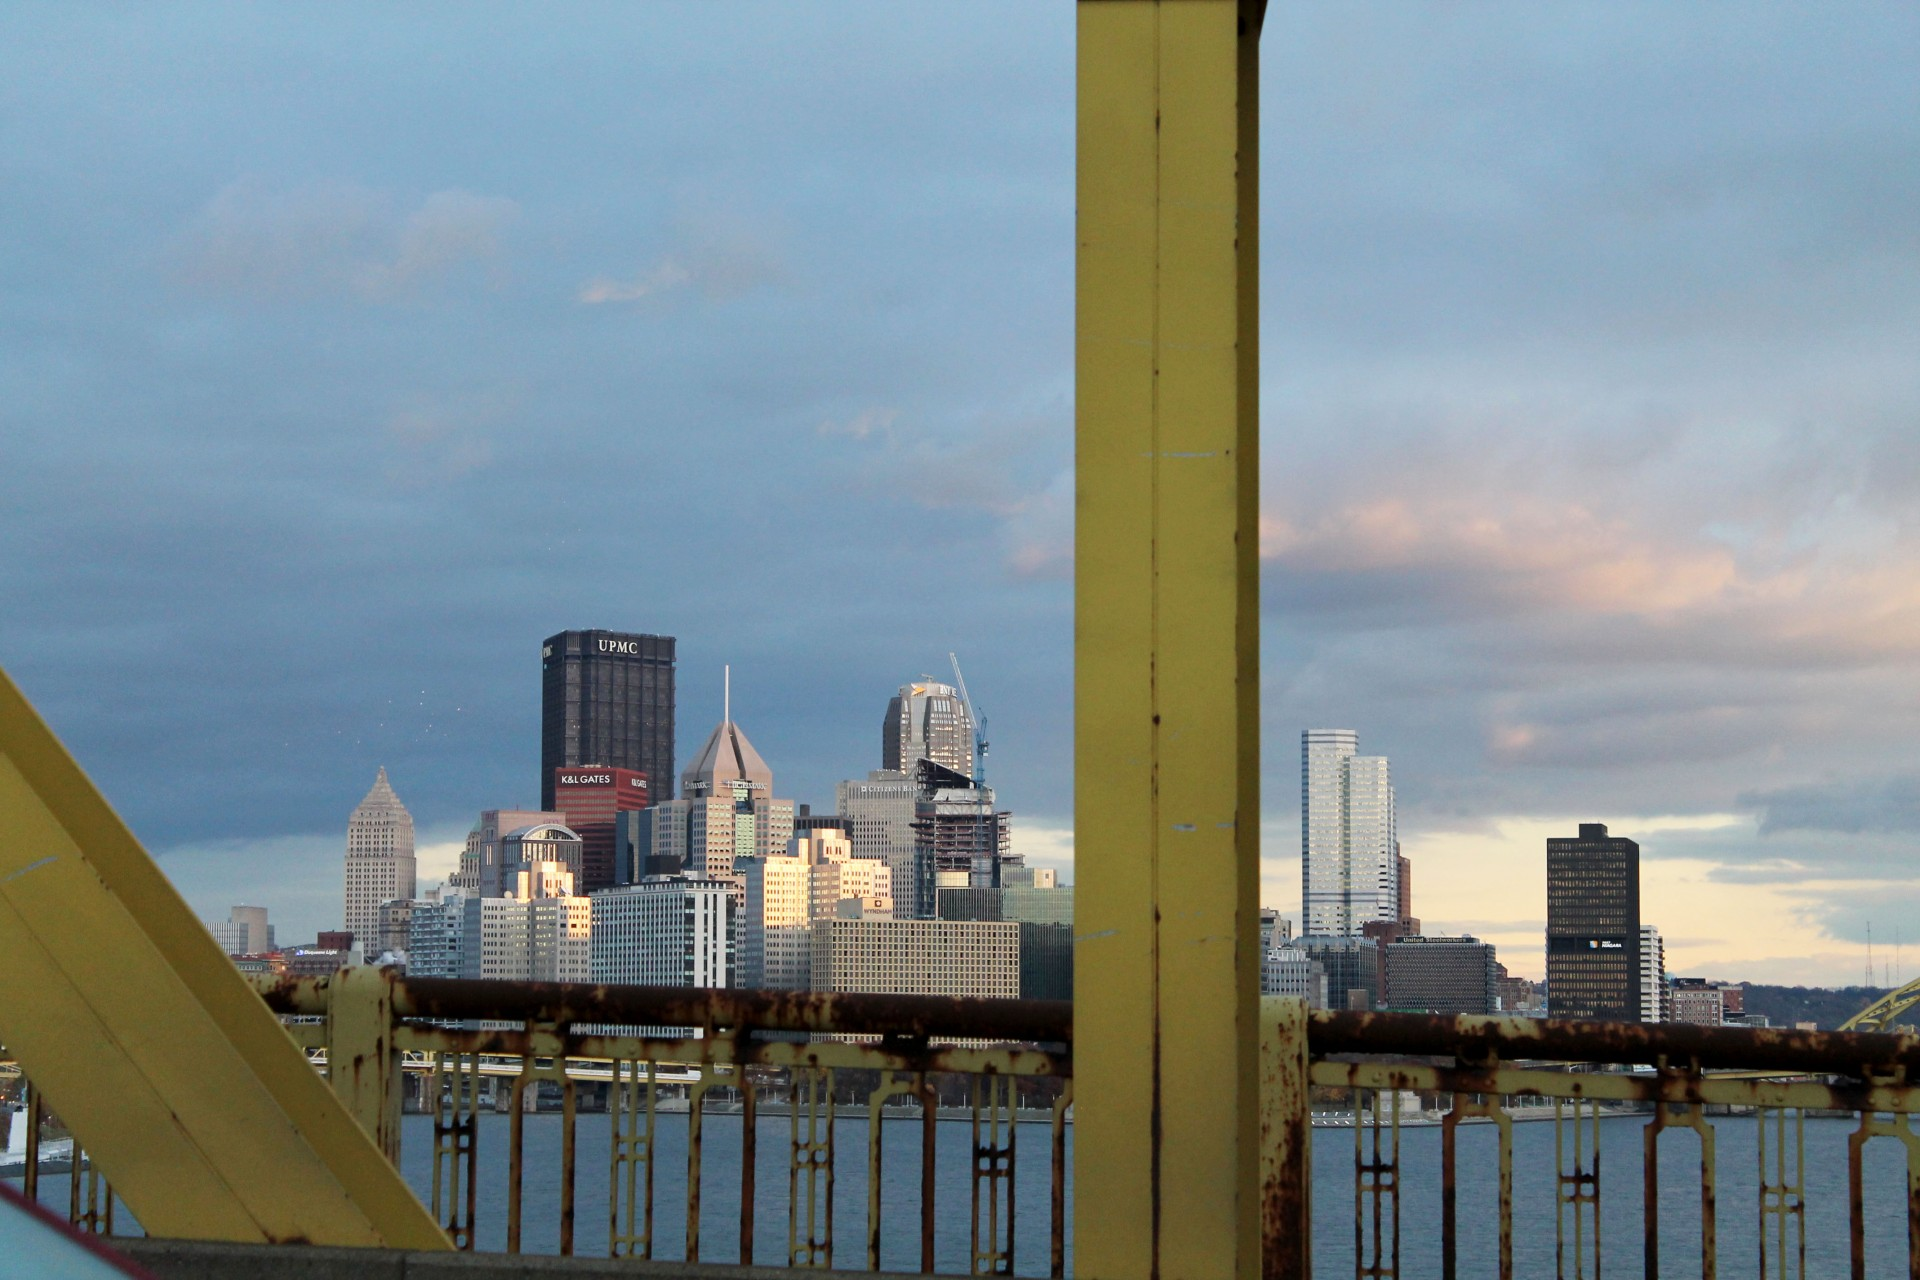 View of city skyline with rusty railings and metal girders in foreground